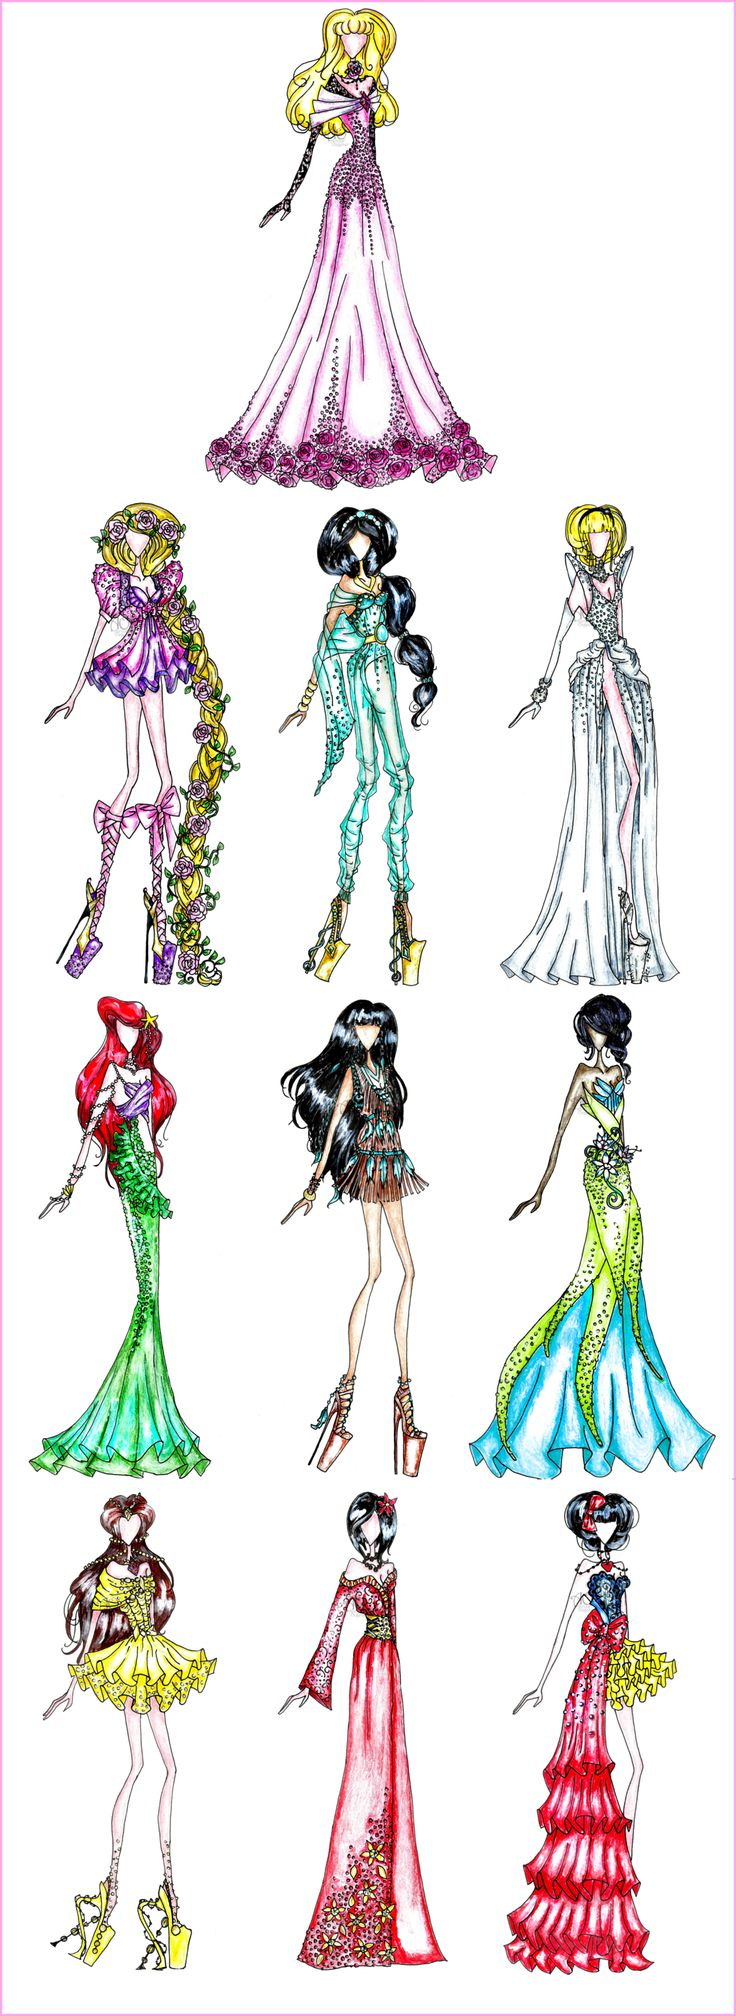 Disney Princess Fashion by ~khIIlver147 on deviantART - More stunning fashions based on the Disney girls! <3